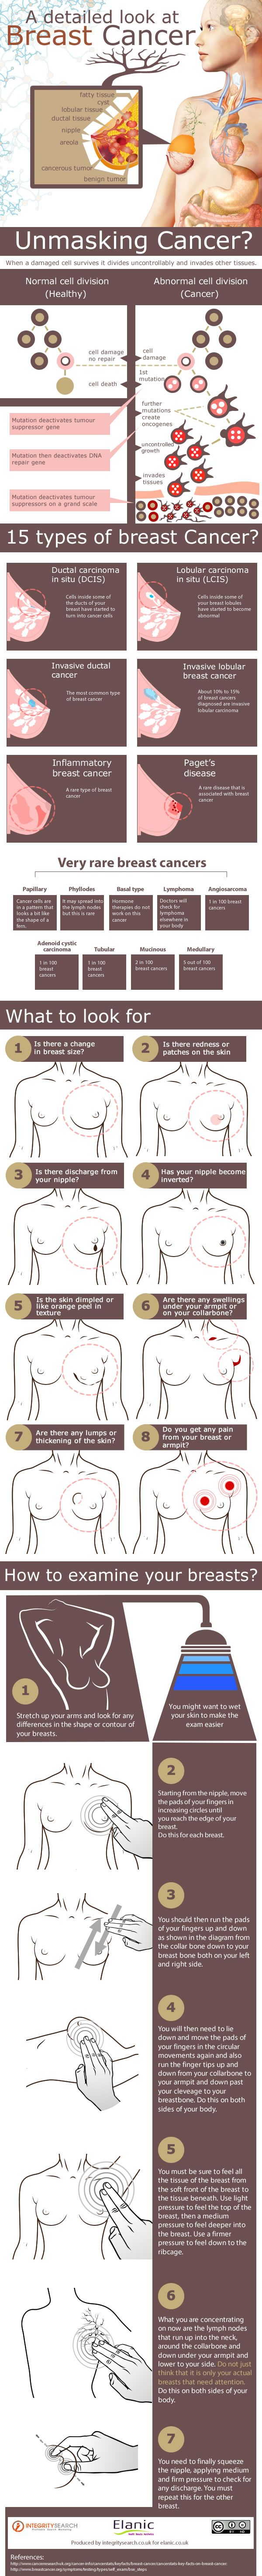 Breast Cancer Infographic: The Most Essential Details You Need To Know - Infographics - Data Visualization